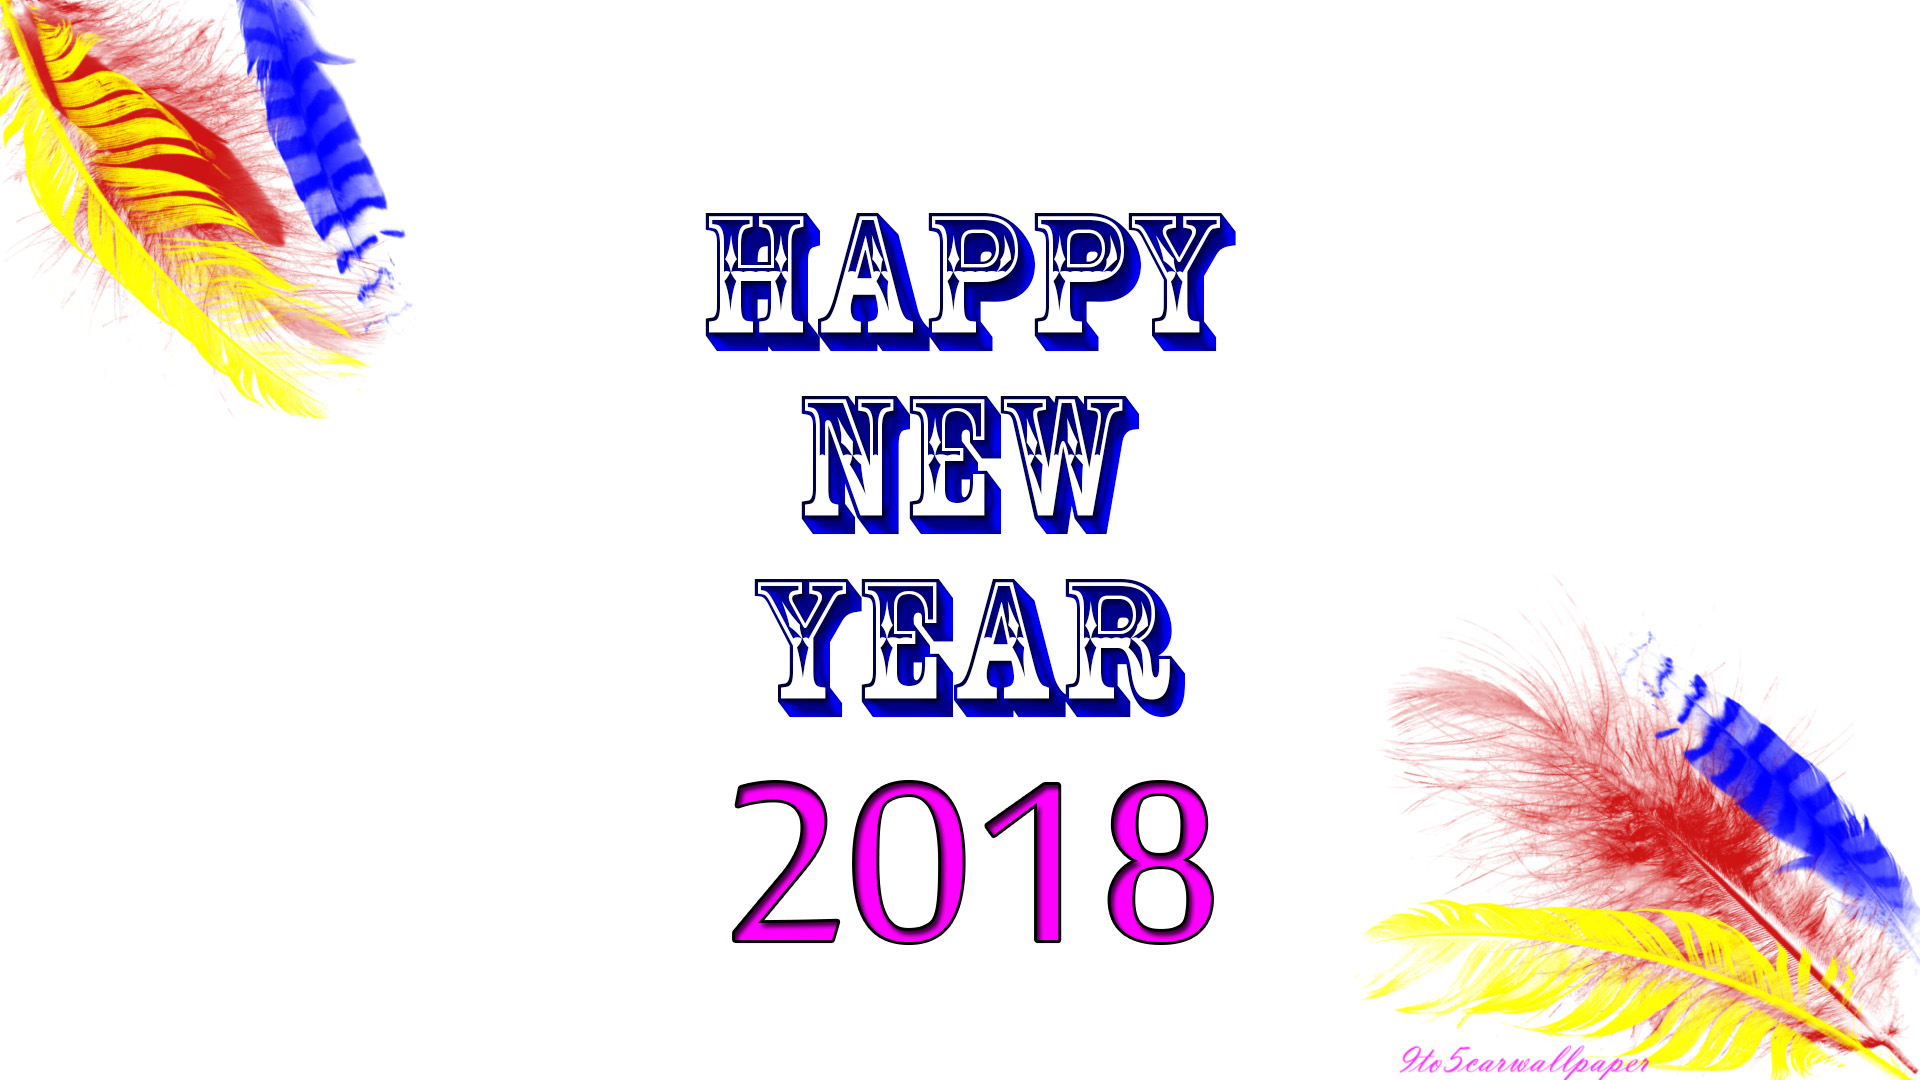 Happy New Year 2018 New Year Images Amp Pics Car Wallpapers